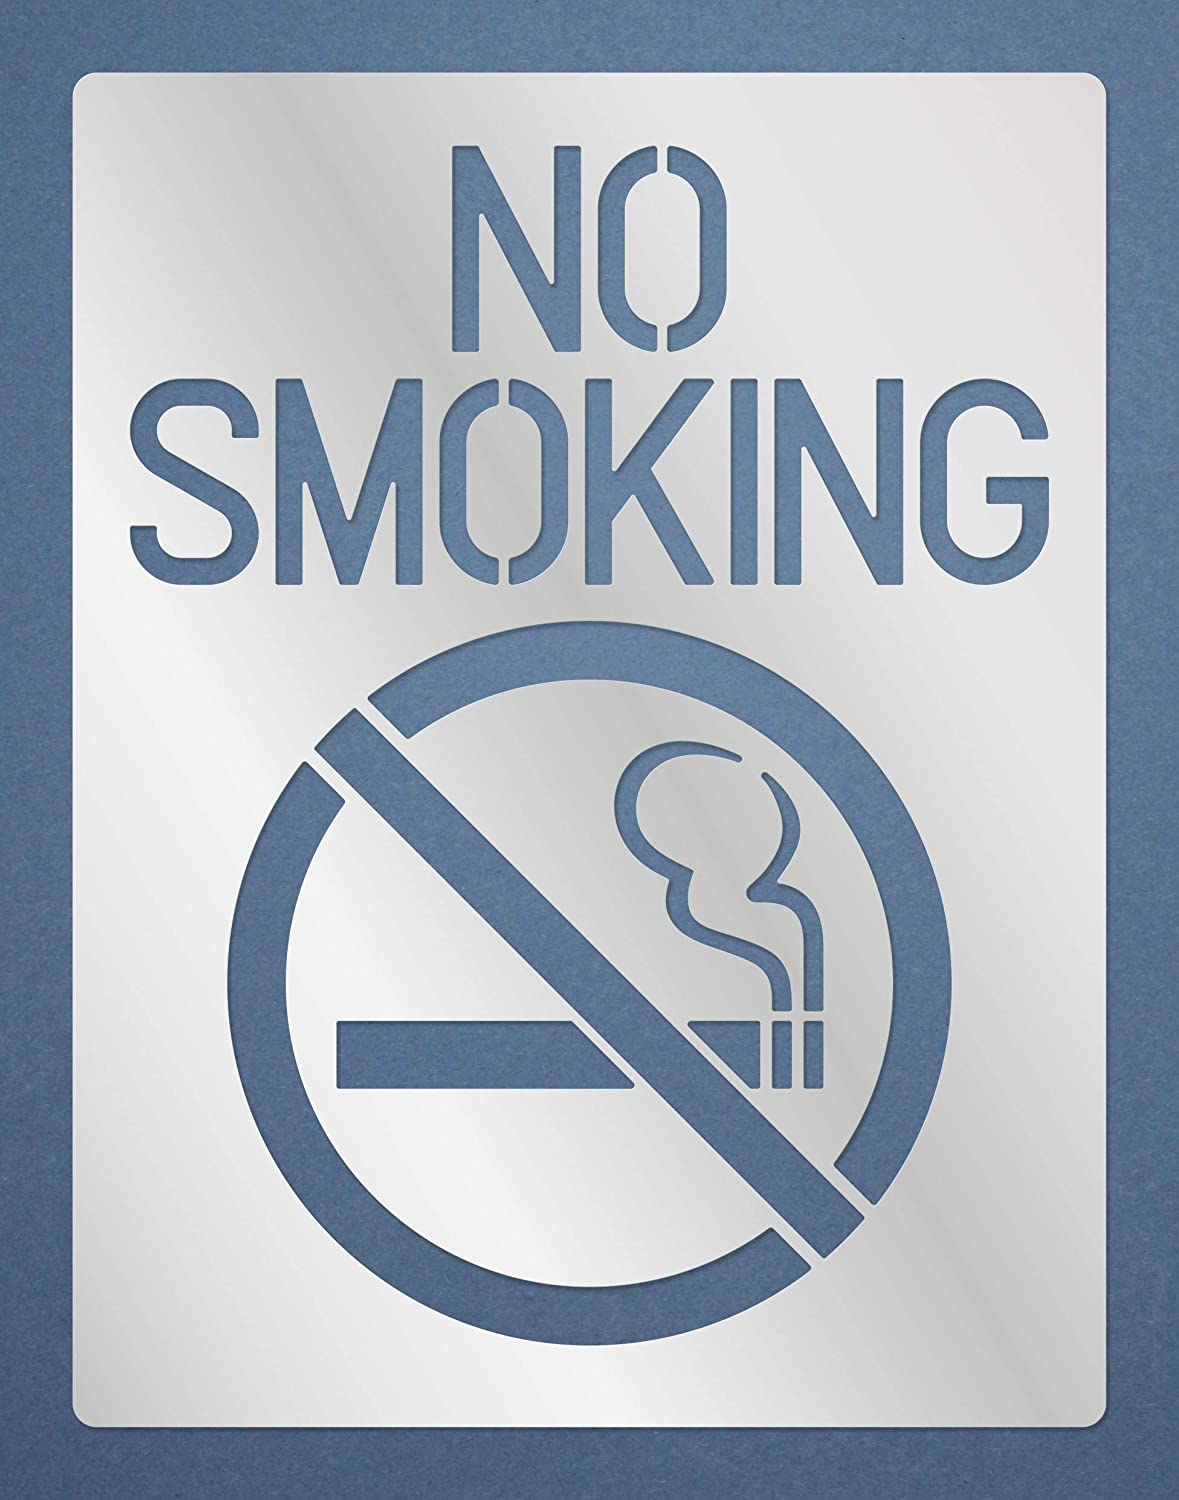 Aleks Melnyk #171 Metal Stencil, No Smoking Inside House Sign, for Home, Smoke Free/Template for Painting, Wood Burning, Wood Carving, Crafts, DIY, Engraving/1 PCS